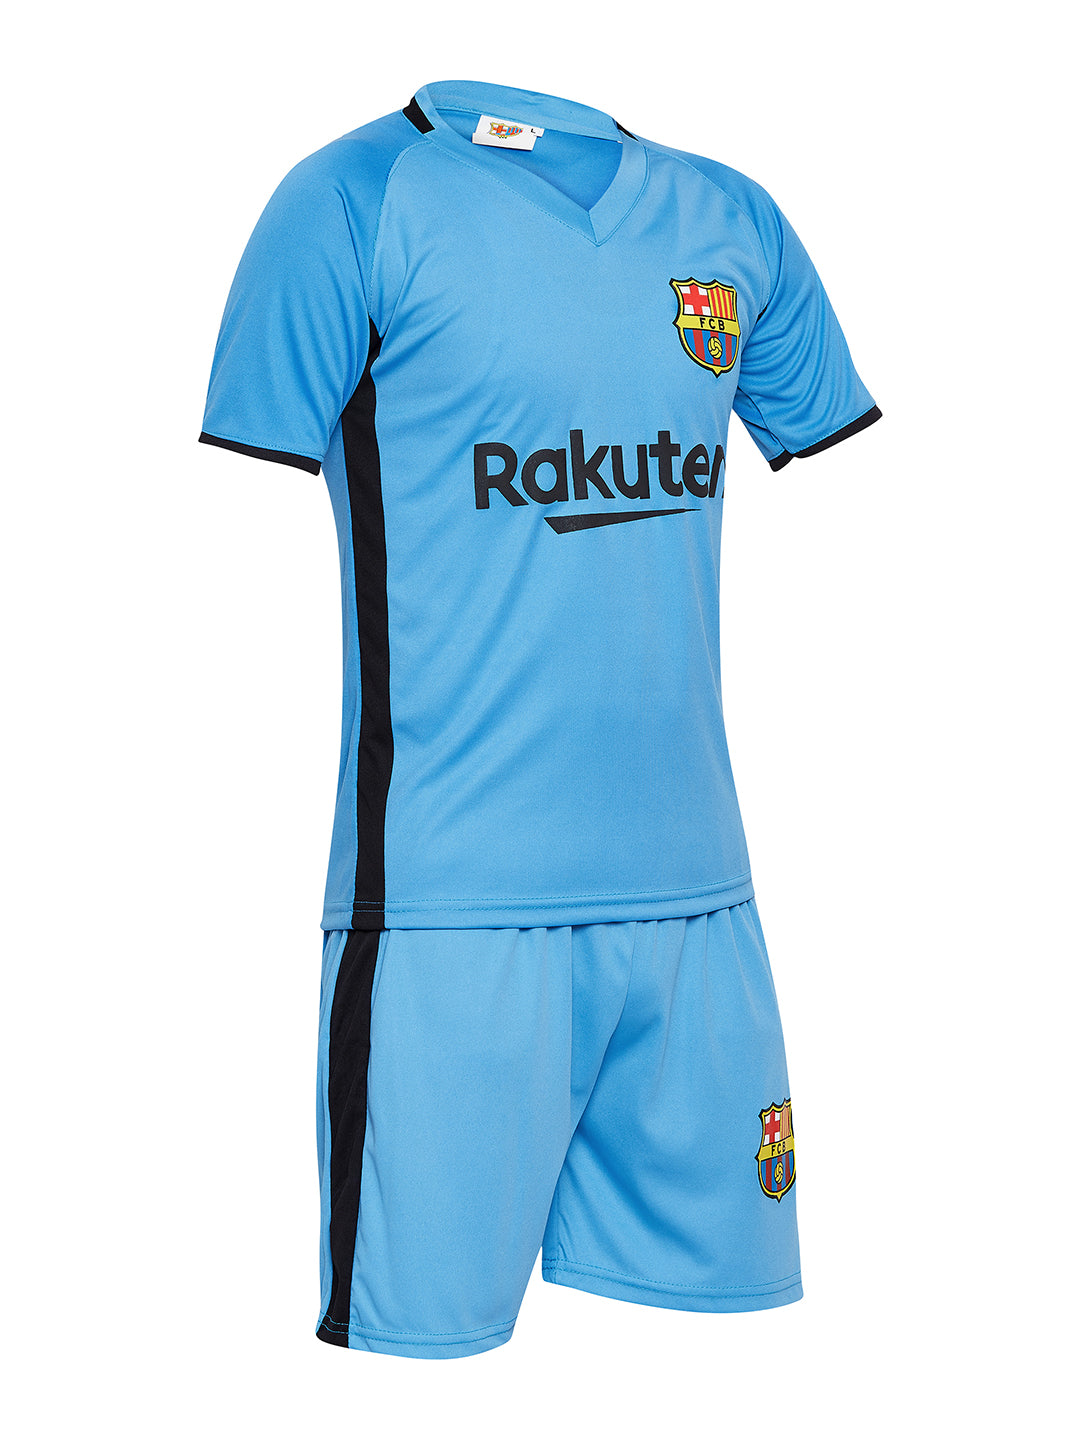 cheap for discount 6e4d0 dde6e Sportigoo Unisex Barcelona KIDS Jersey Set - Blue